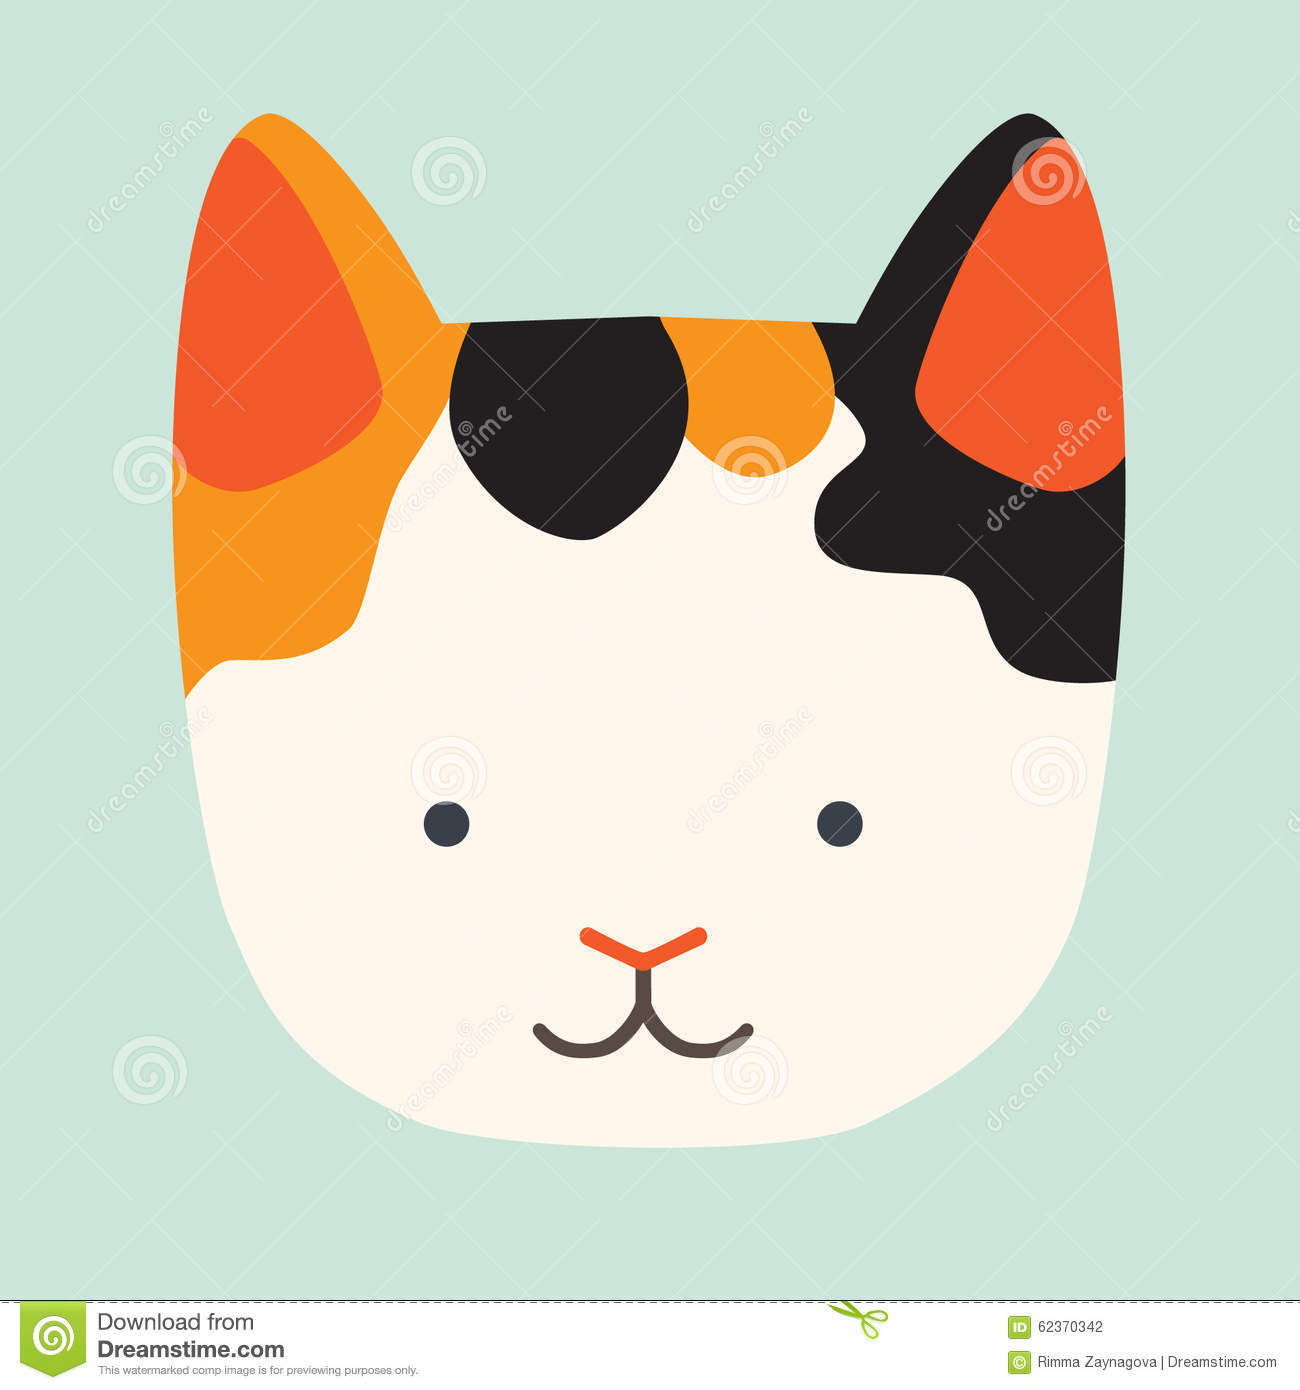 Cute Cat Vector Icon Stock Vector - Image: 62370342 Smiling Dog And Cat